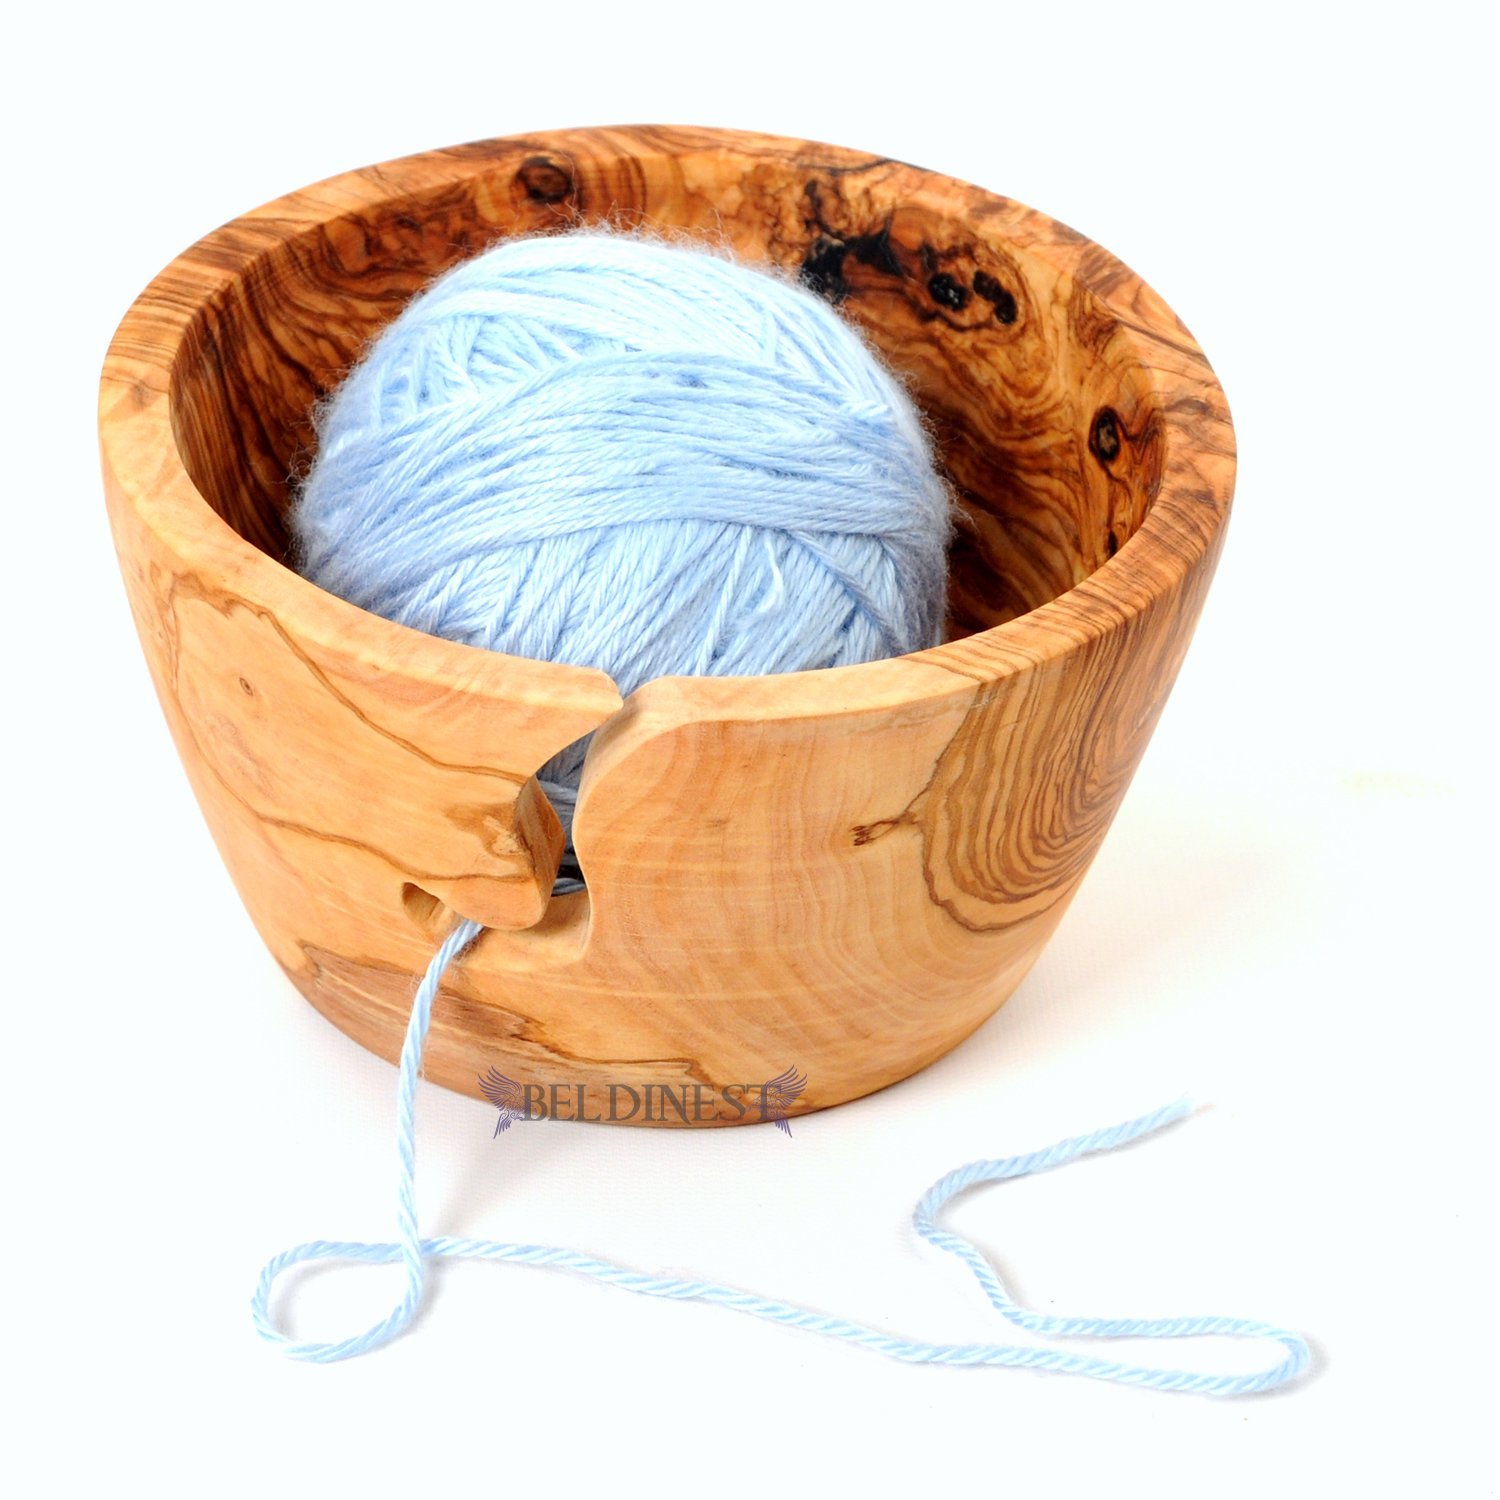 BeldiNest Sale! Knitting Bowl Hand-Carved from Olive Wood Yarn Bowl Gift Idea for Christmas